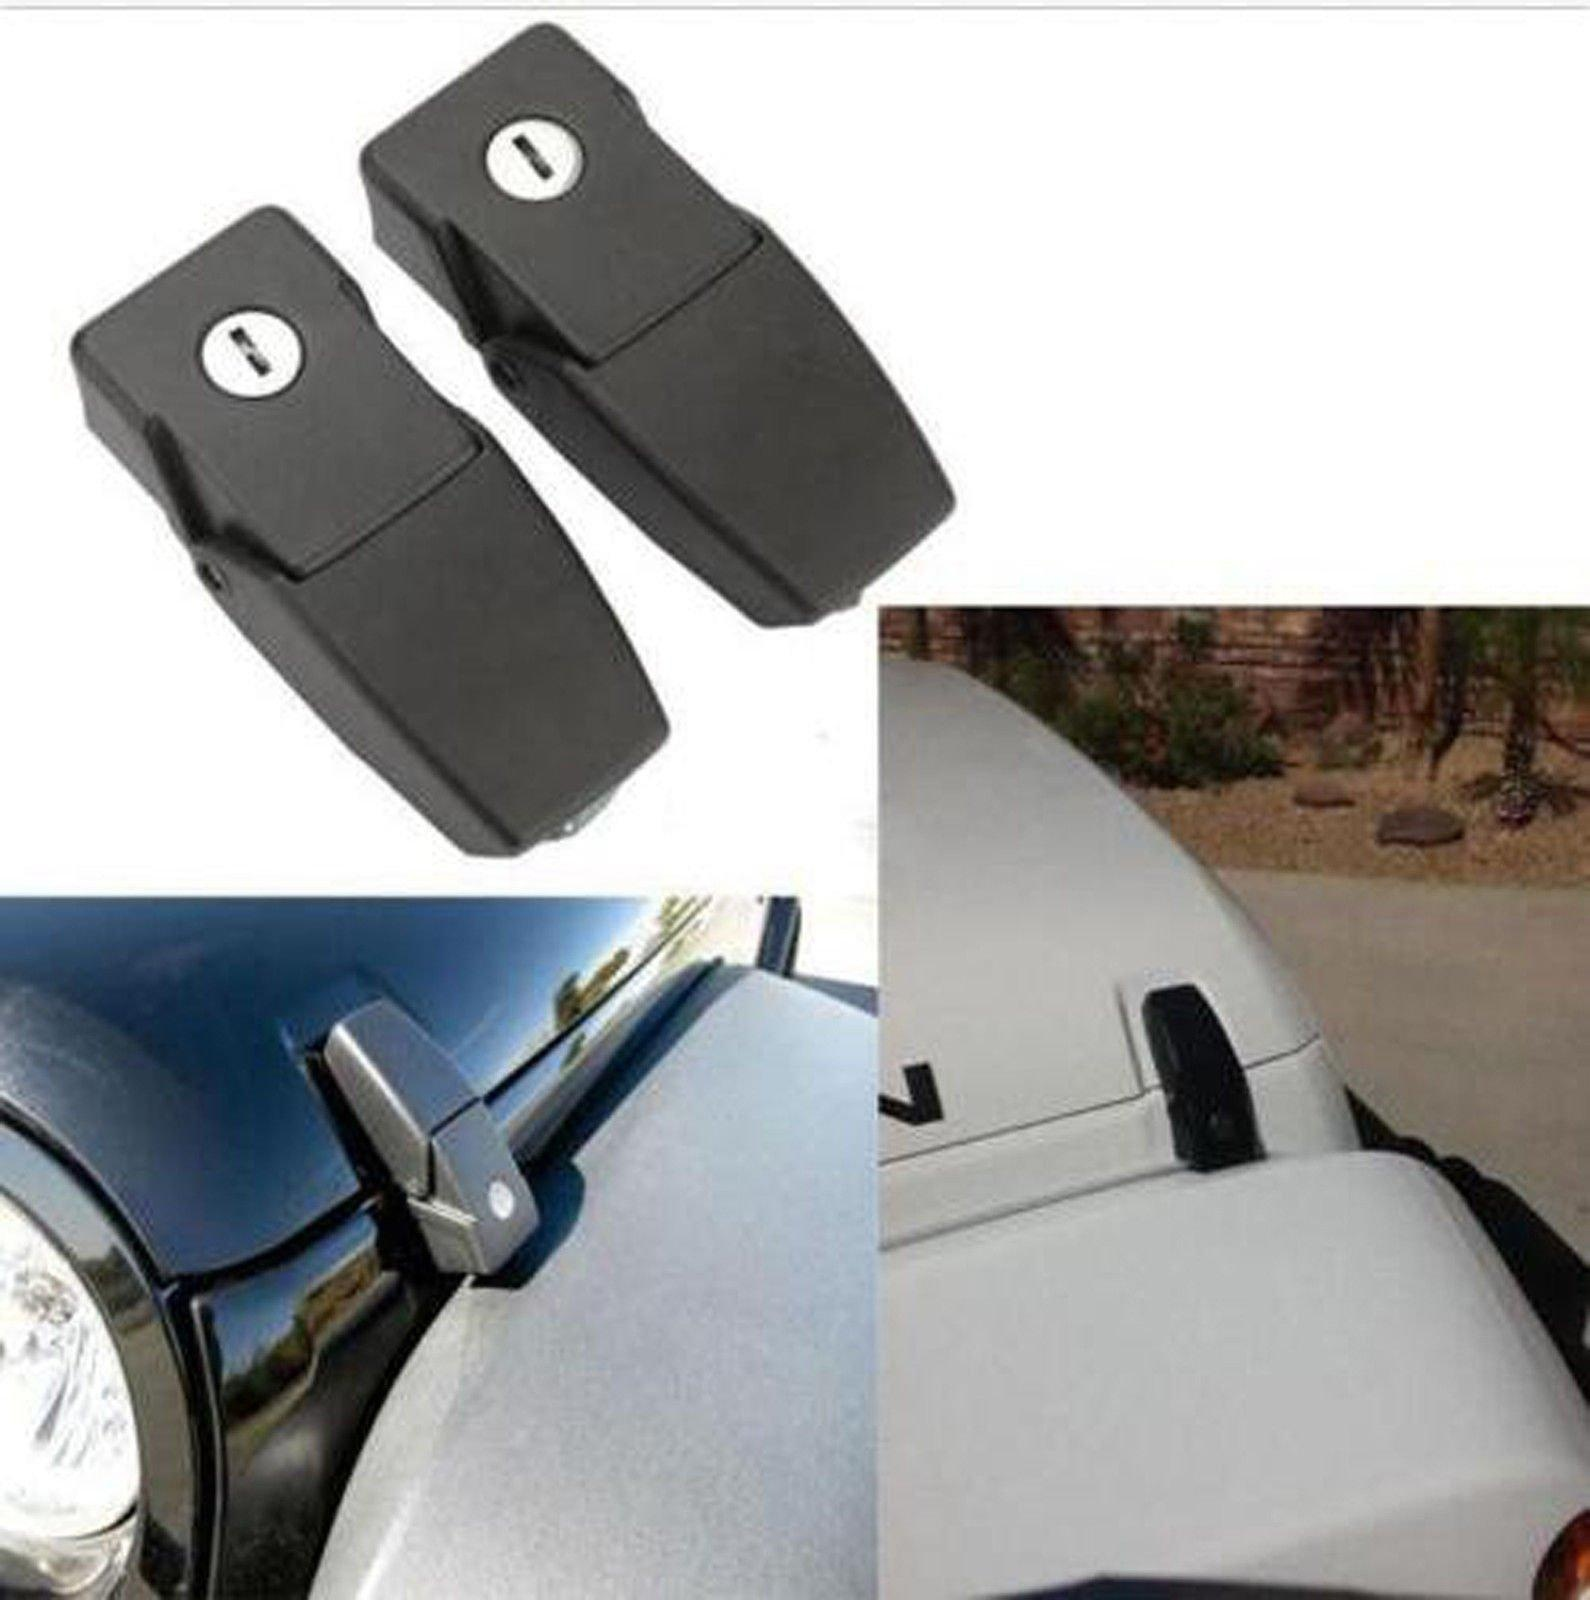 Online Store Fmtoppeak 1 Pair Black Catch Latches Kit Locking Hood Jeep Wrangler Release Latch For 2007 2016